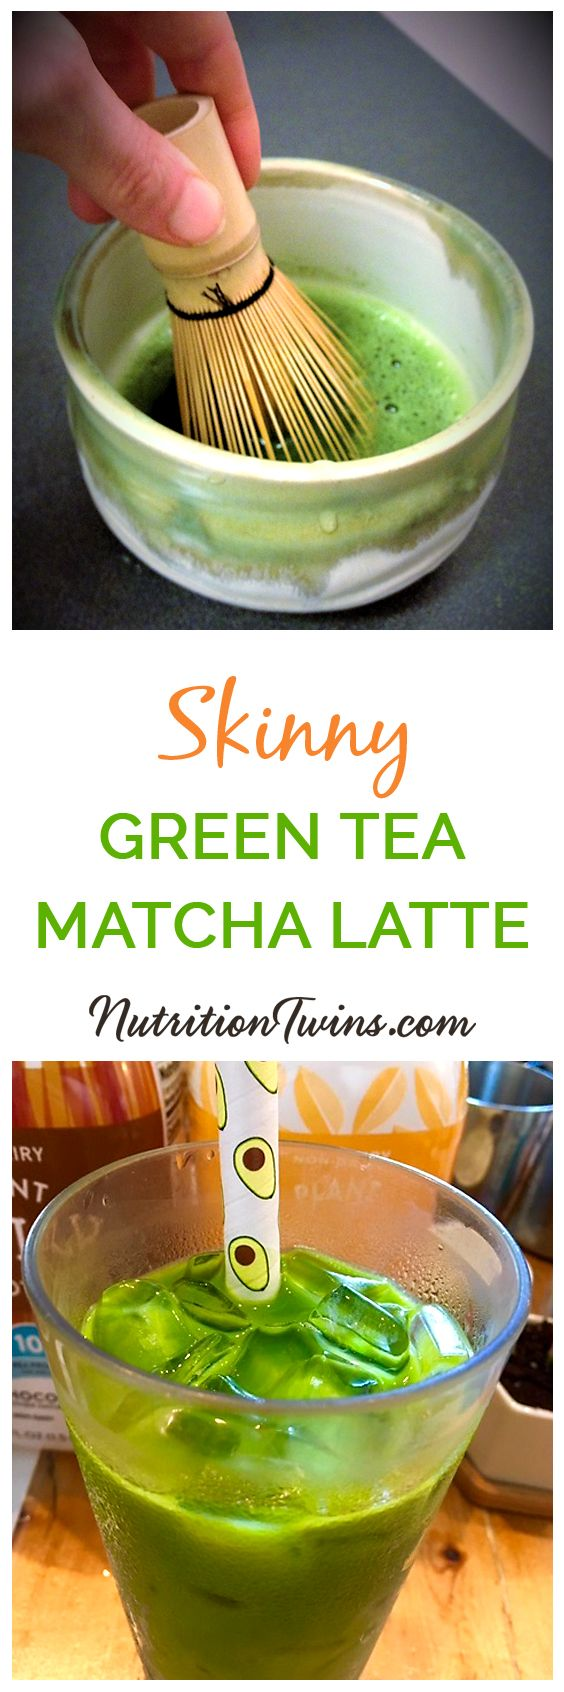 Skinny Iced Matcha Green Tea Latte | Only 20 Calories &  packed with anti-inflammatories to help your liver with it's detox processes | 30 -second version or scroll down for traditional style |For MORE RECIPES & Nutrition & Fitness Tips please SIGN UP for our FREE NEWSLETTER www.NutritionTwins.com